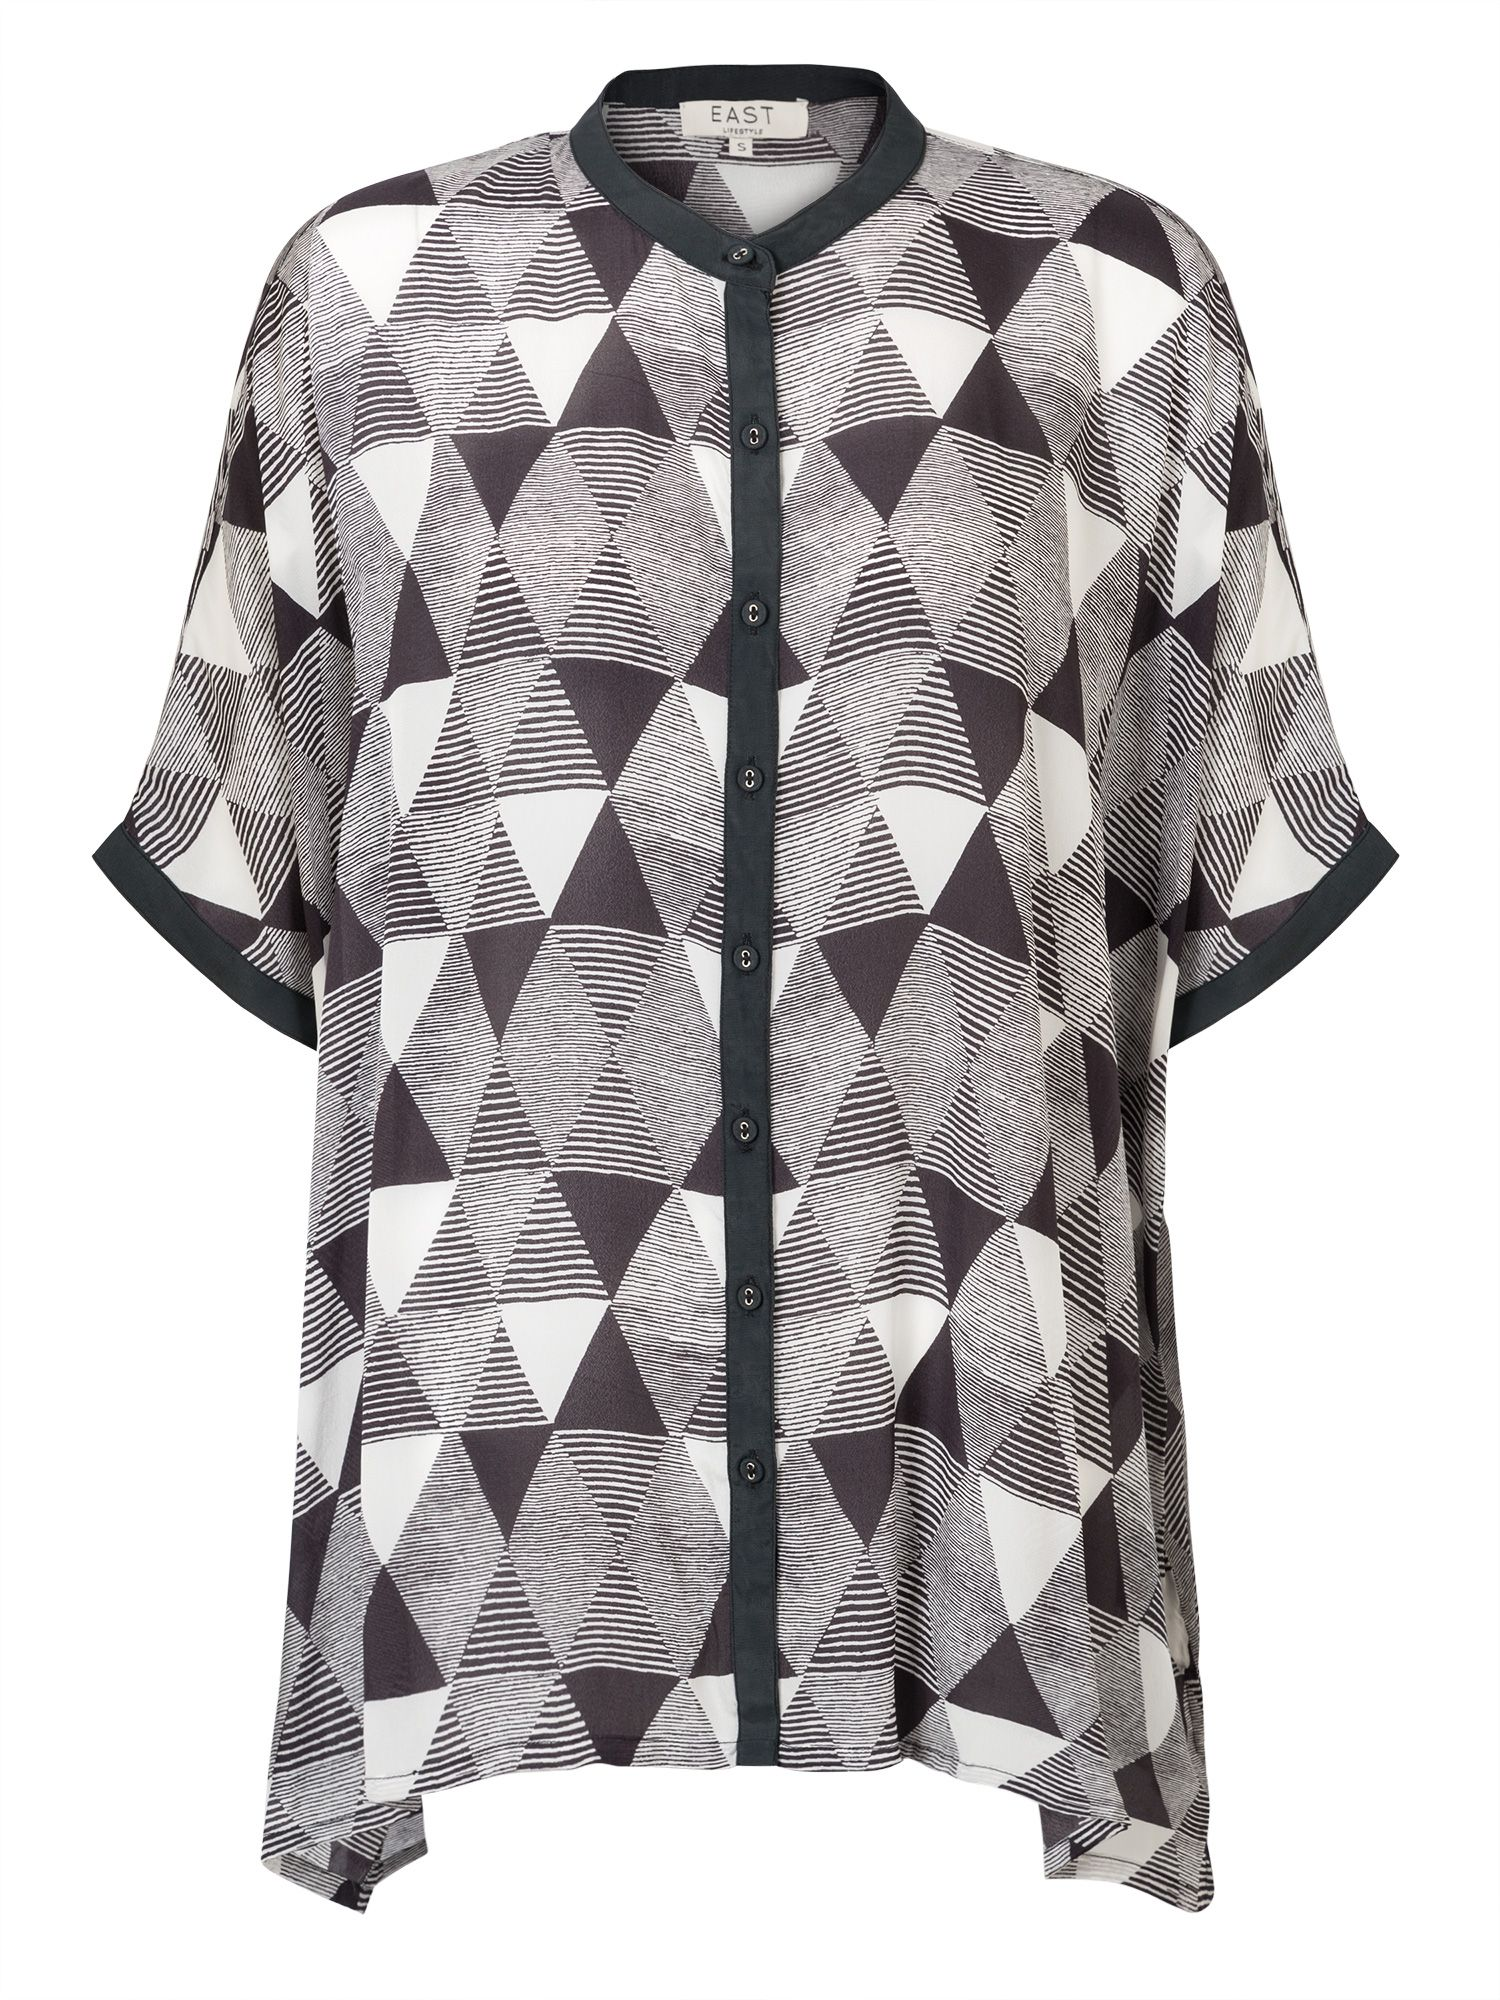 East Pyramid Print Oversize Blouse, Green